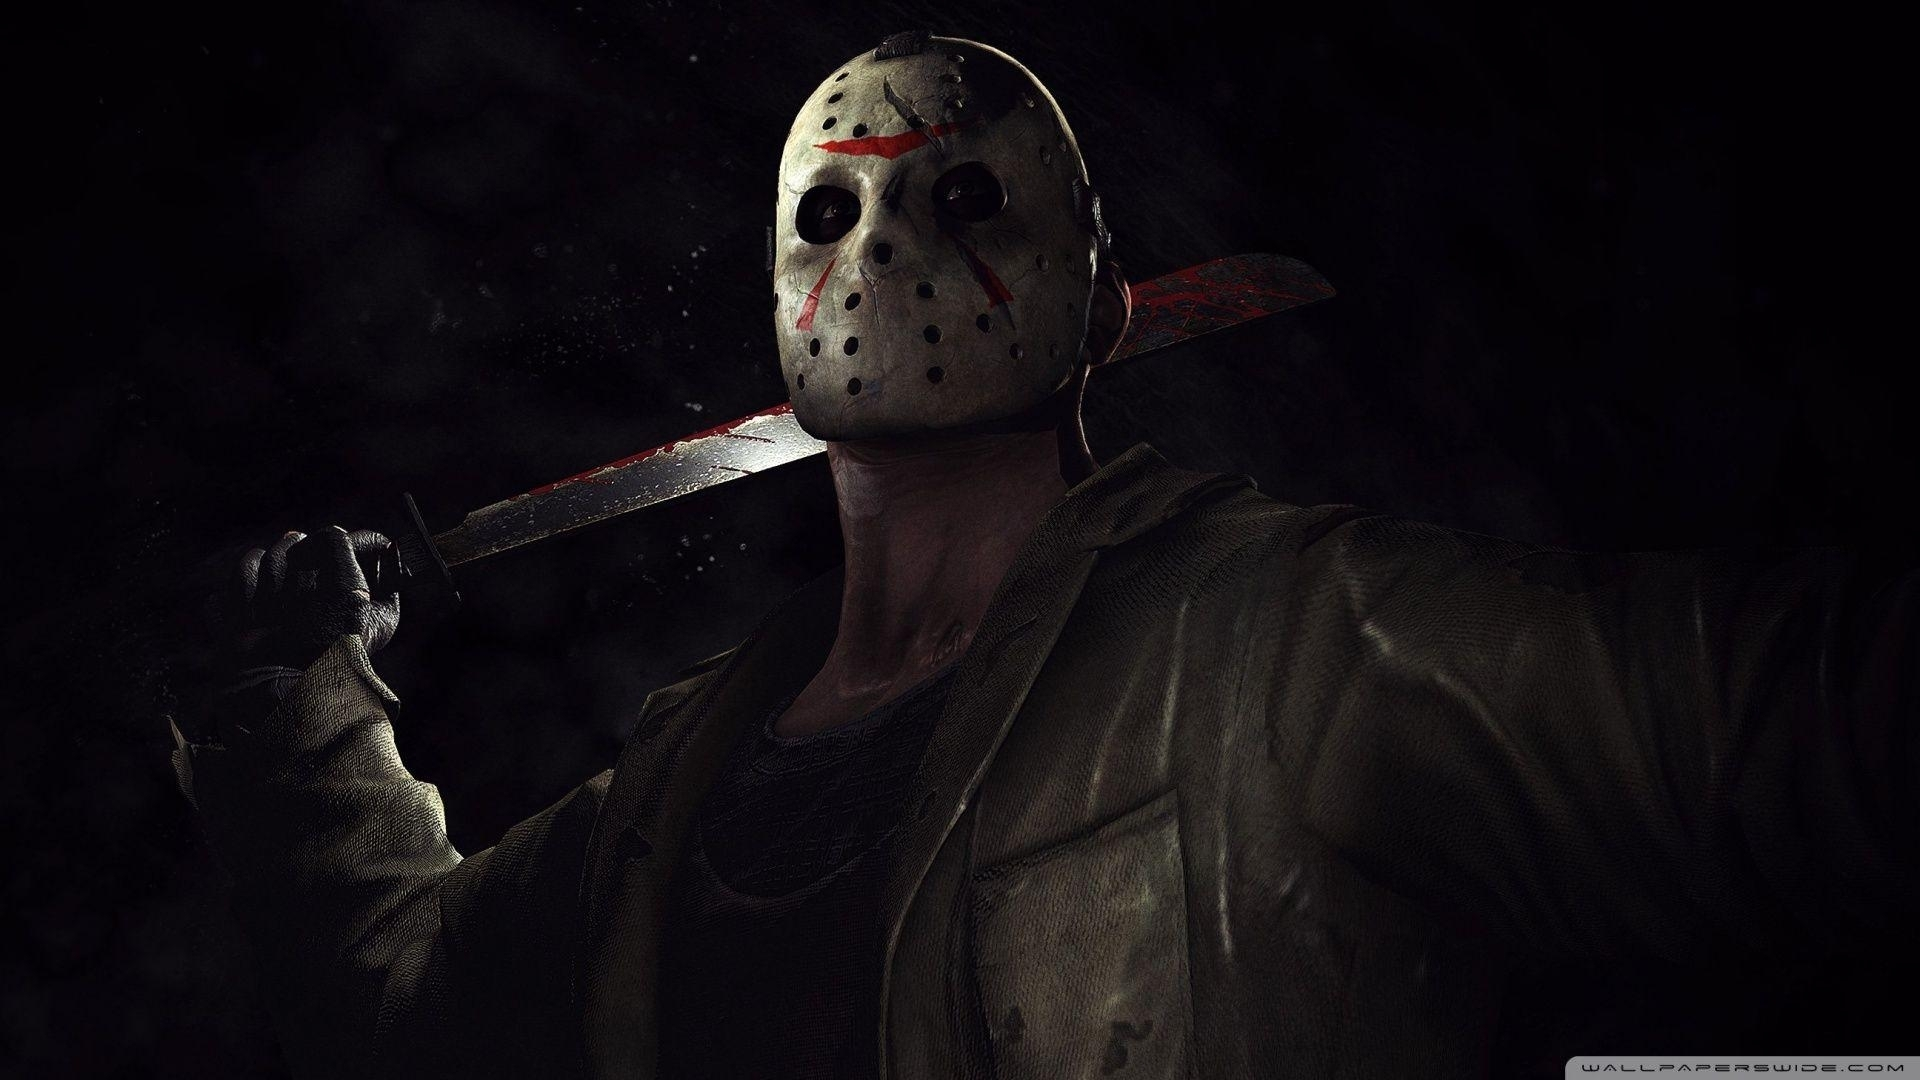 10 New Jason Voorhees Wallpaper 1080P FULL HD 1920×1080 For PC Background